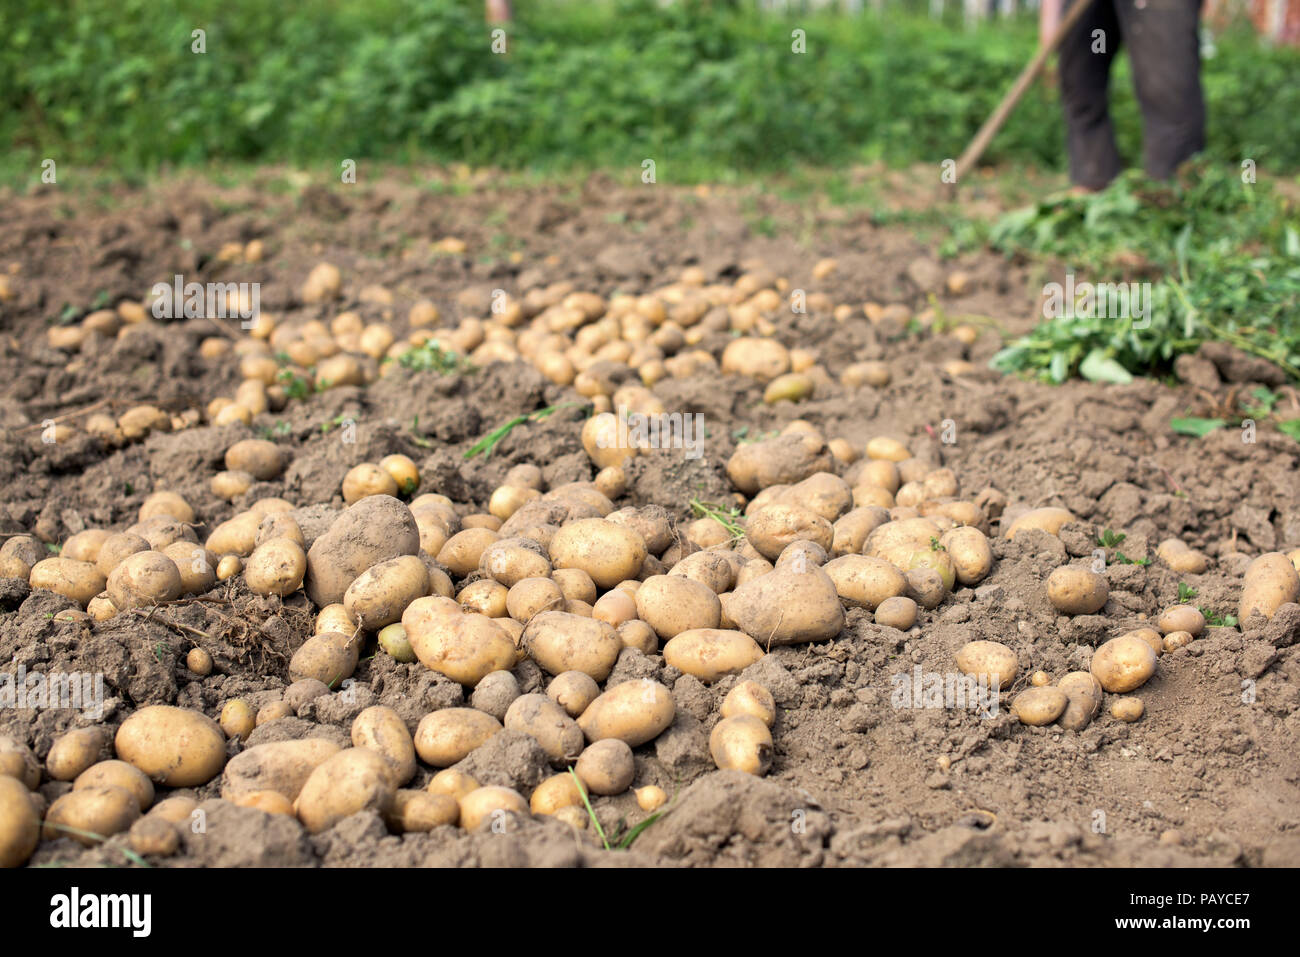 Worker digs in a potato vegetable garden Stock Photo: 213273487 - Alamy